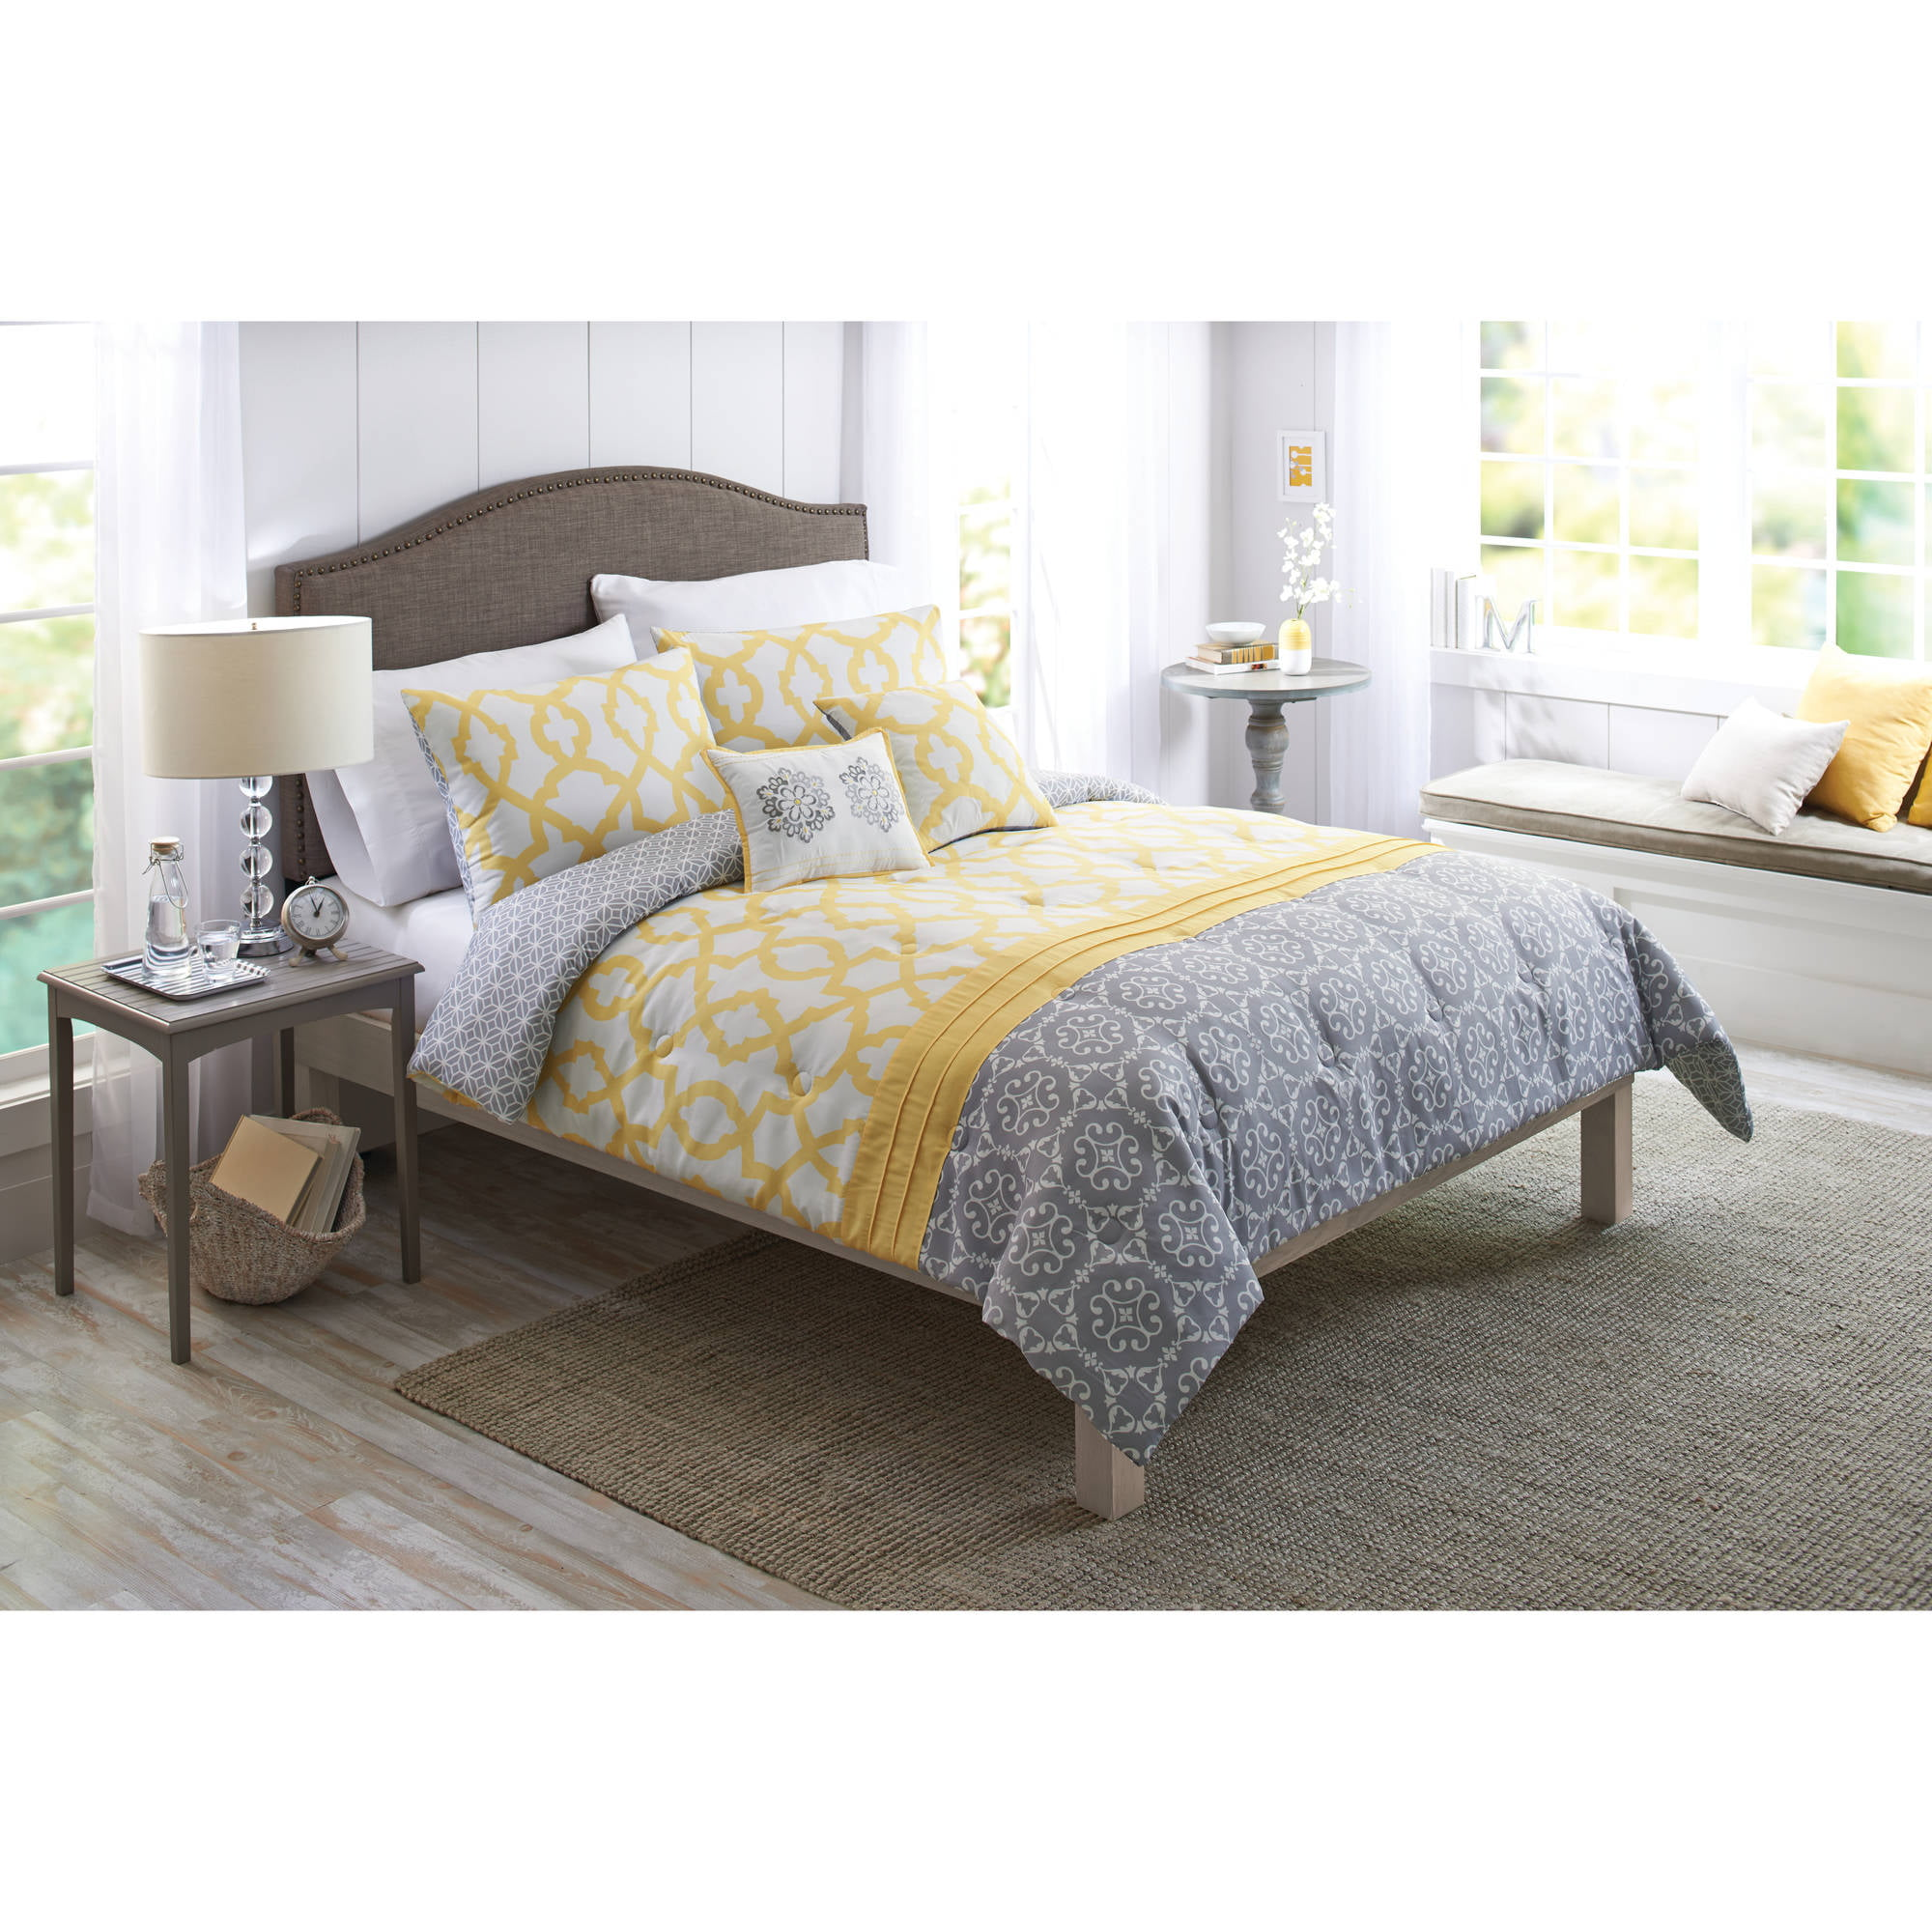 good looking better homes gardens. Better Homes and Gardens Yellow Gray Medallion 5 Piece Bedding  Comforter Set Walmart com